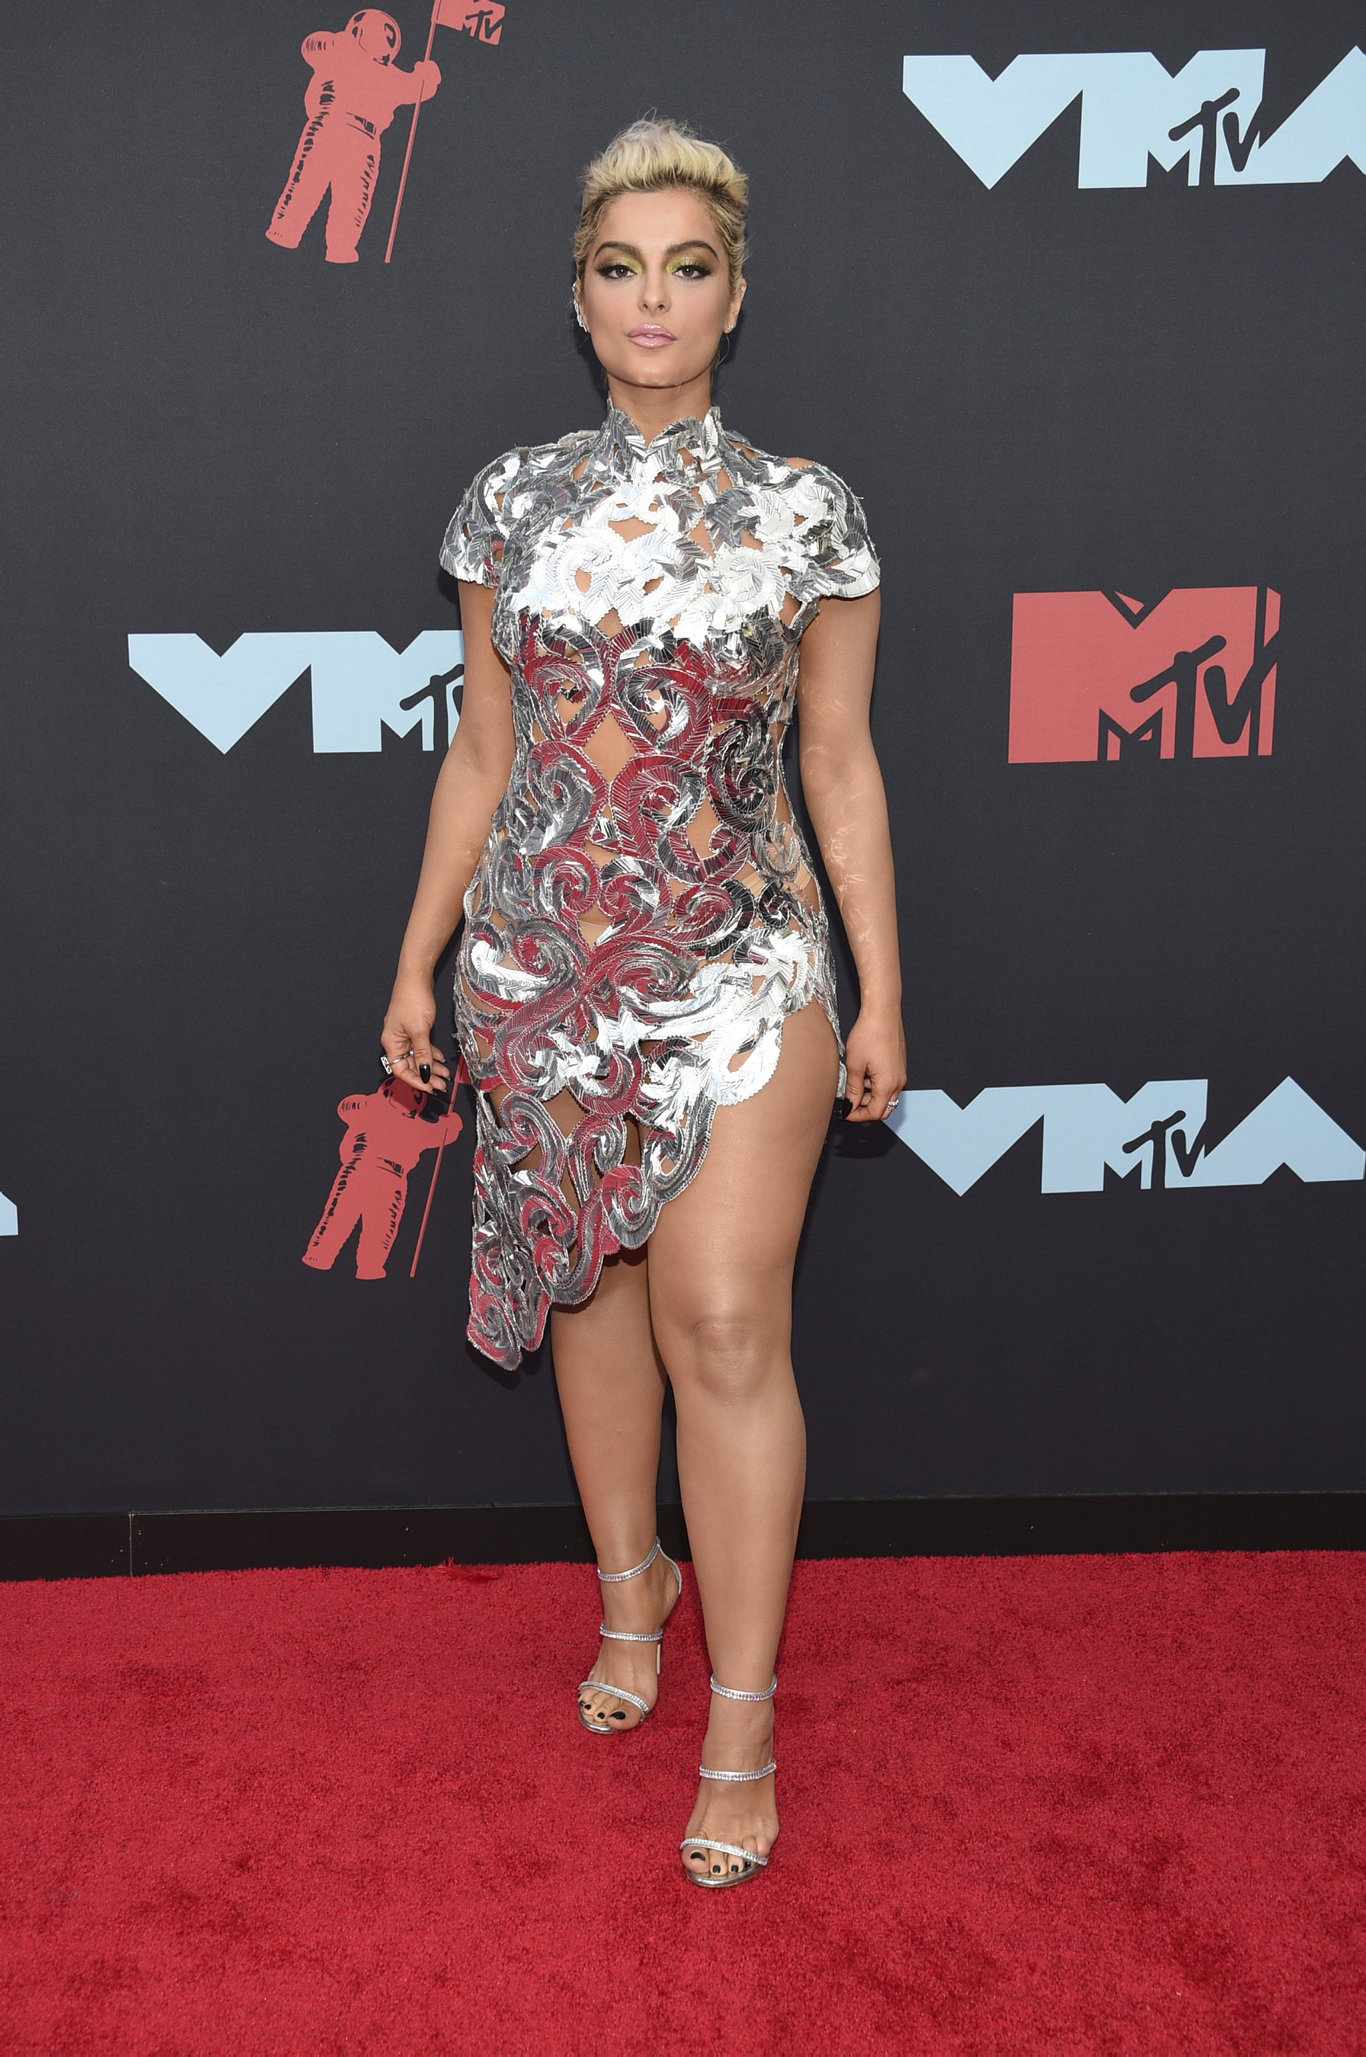 Bebe Rexha arrives at the MTV Video Music Awards at the Prudential Center on Monday, Aug. 26, 2019, in Newark, N.J.